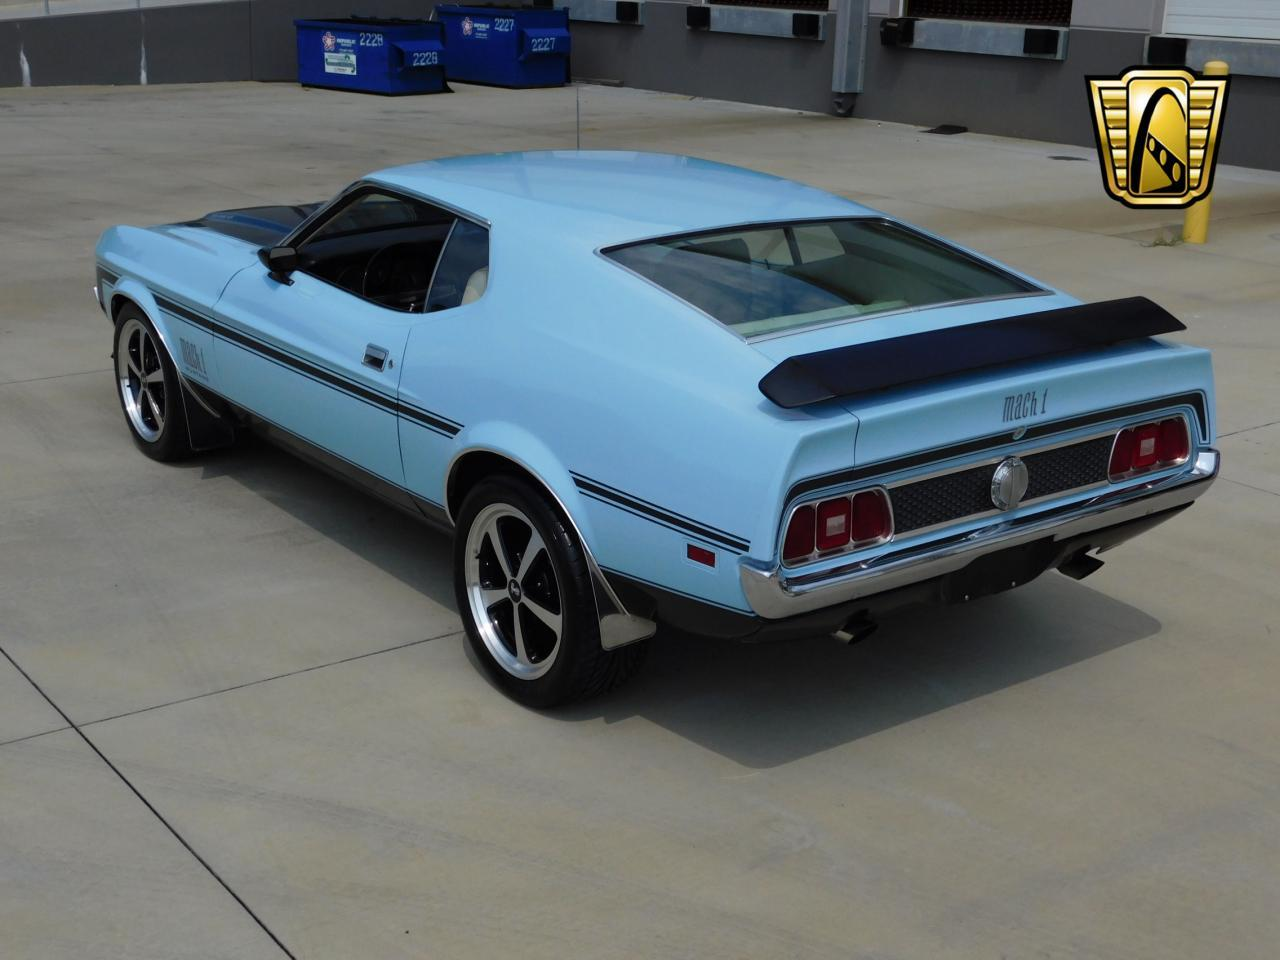 Large Picture of 1971 Ford Mustang located in Alpharetta Georgia - $33,995.00 - LTQ6